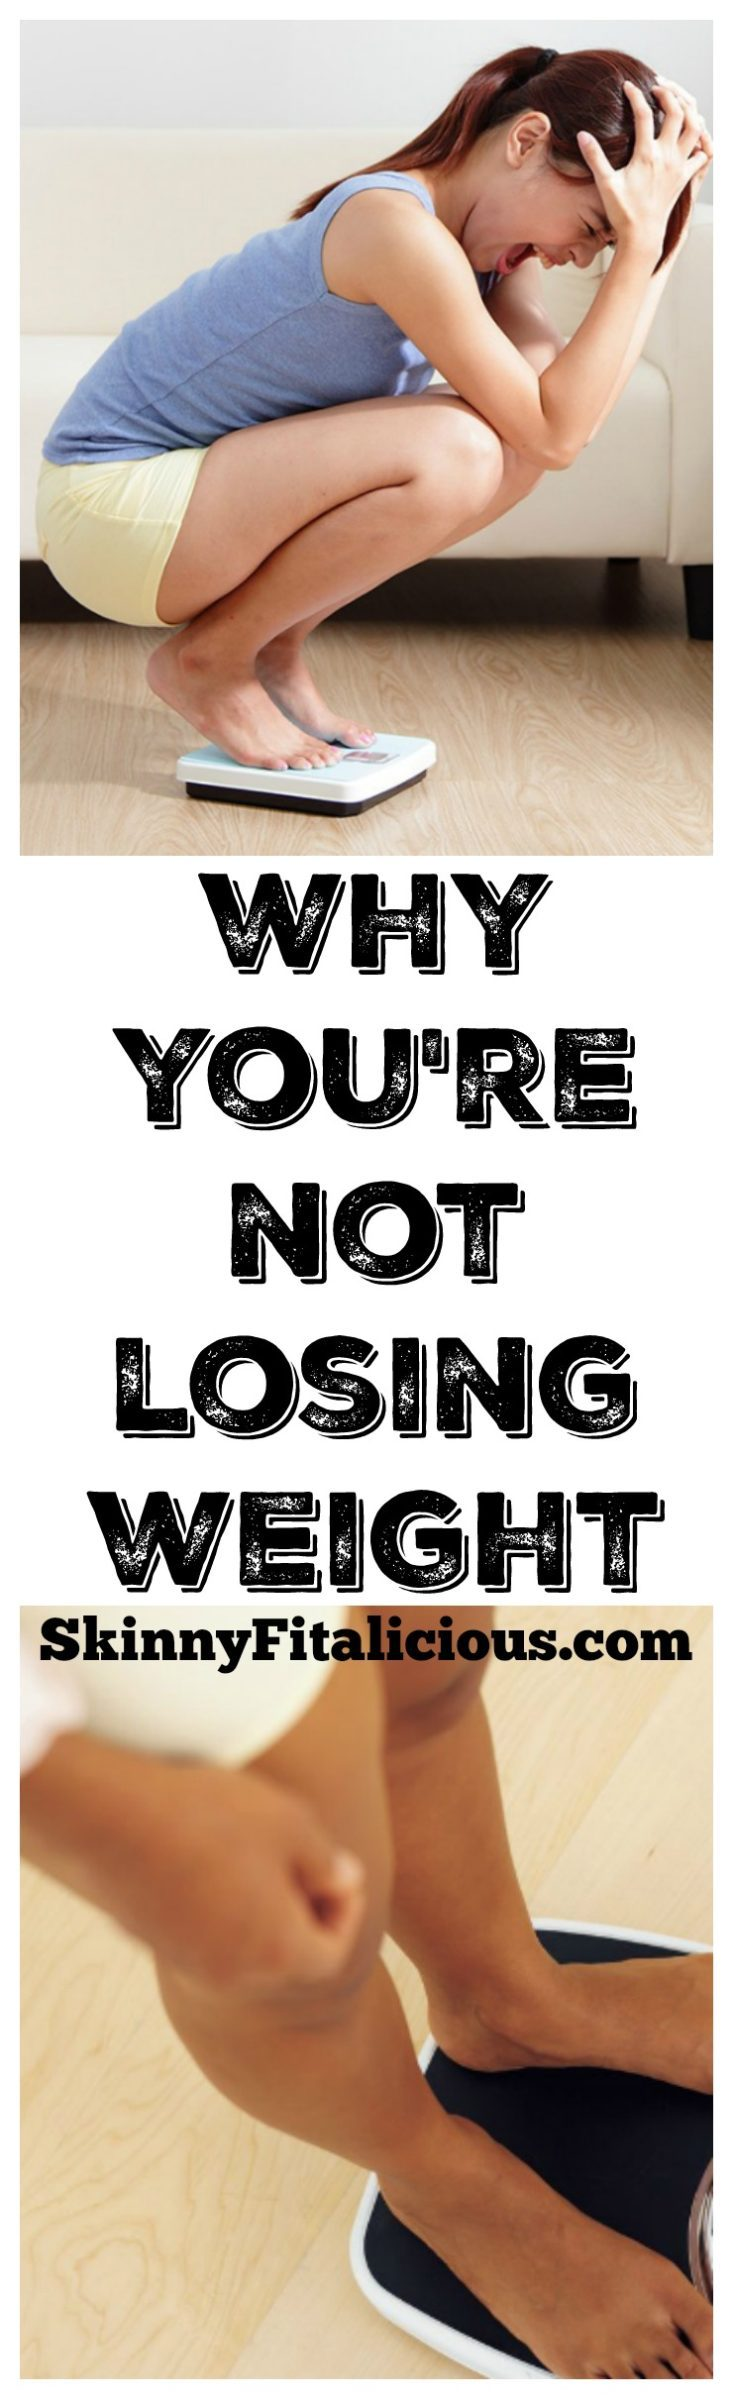 As your health coach, I'm getting real about your health, weight loss, your lack of self esteem, and the truth about Why You're Not Losing Weight. If you need me to give you tough love coaching to get you to your goals!